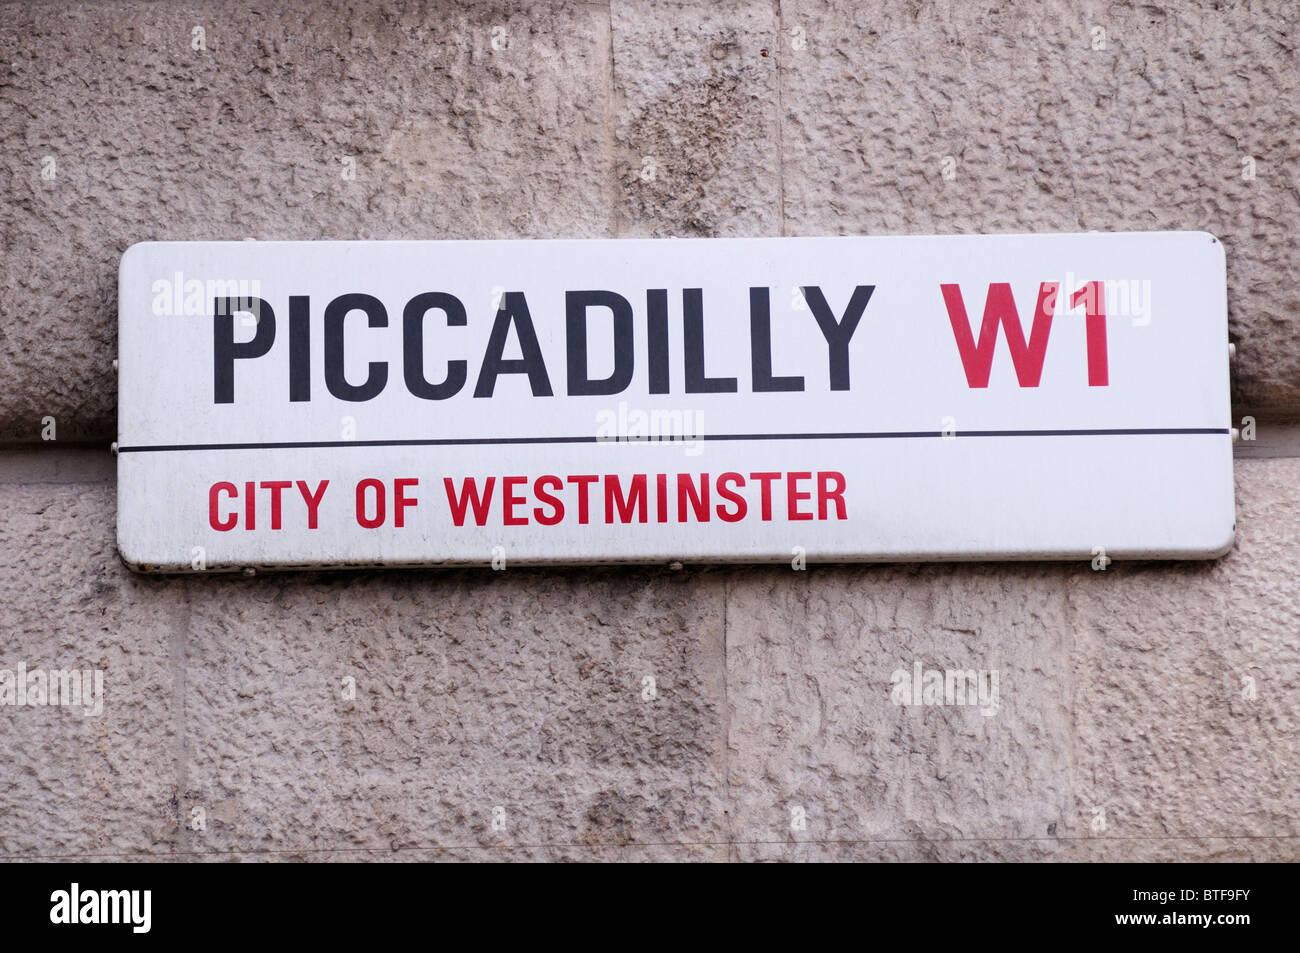 Piccadilly W1 City of Westminster street sign, London, England, UK - Stock Image